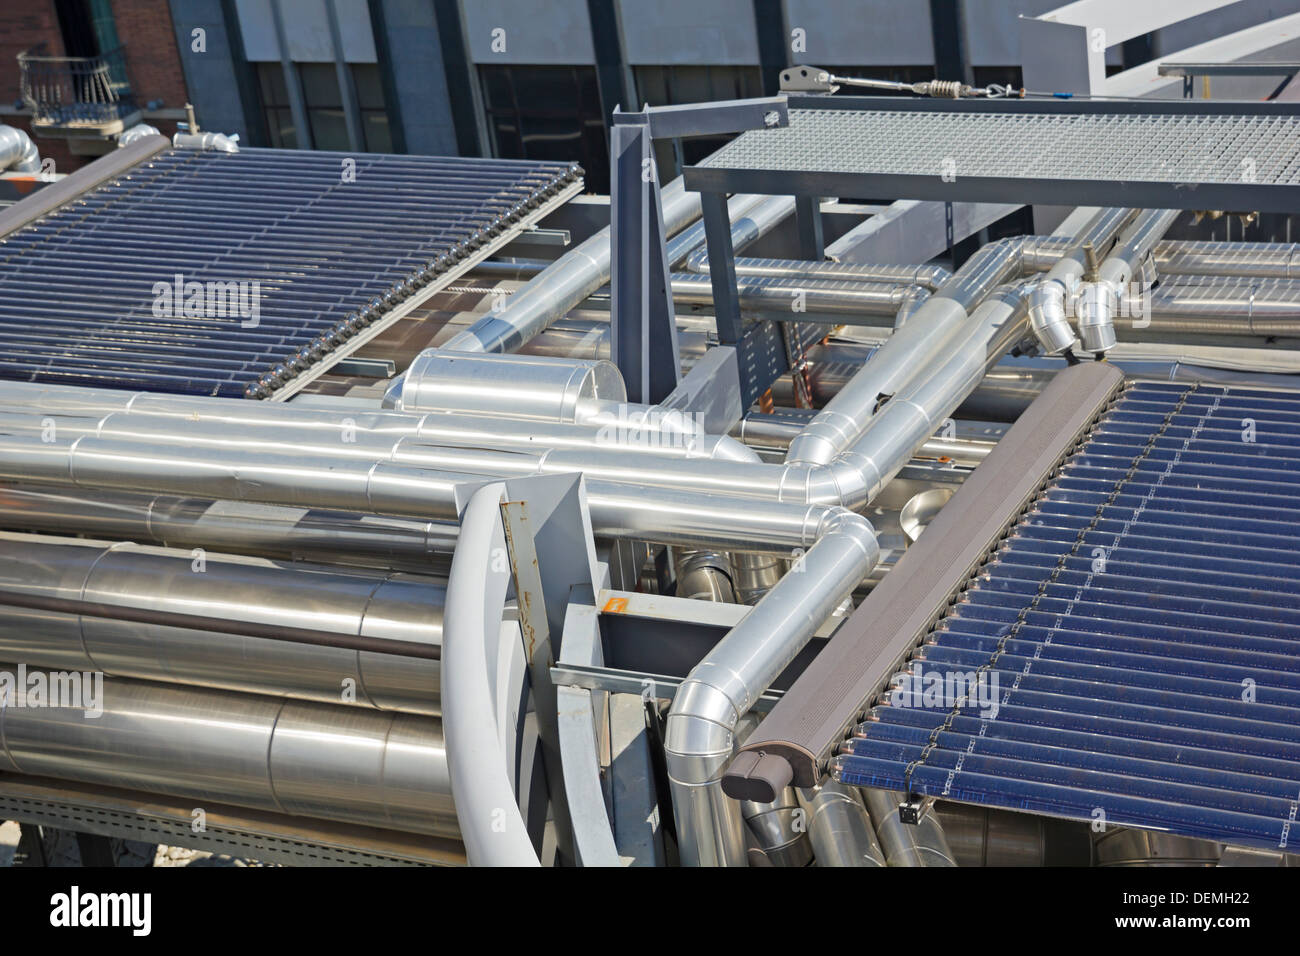 Solar vacuum tube. Integrated energy system of a building. - Stock Image